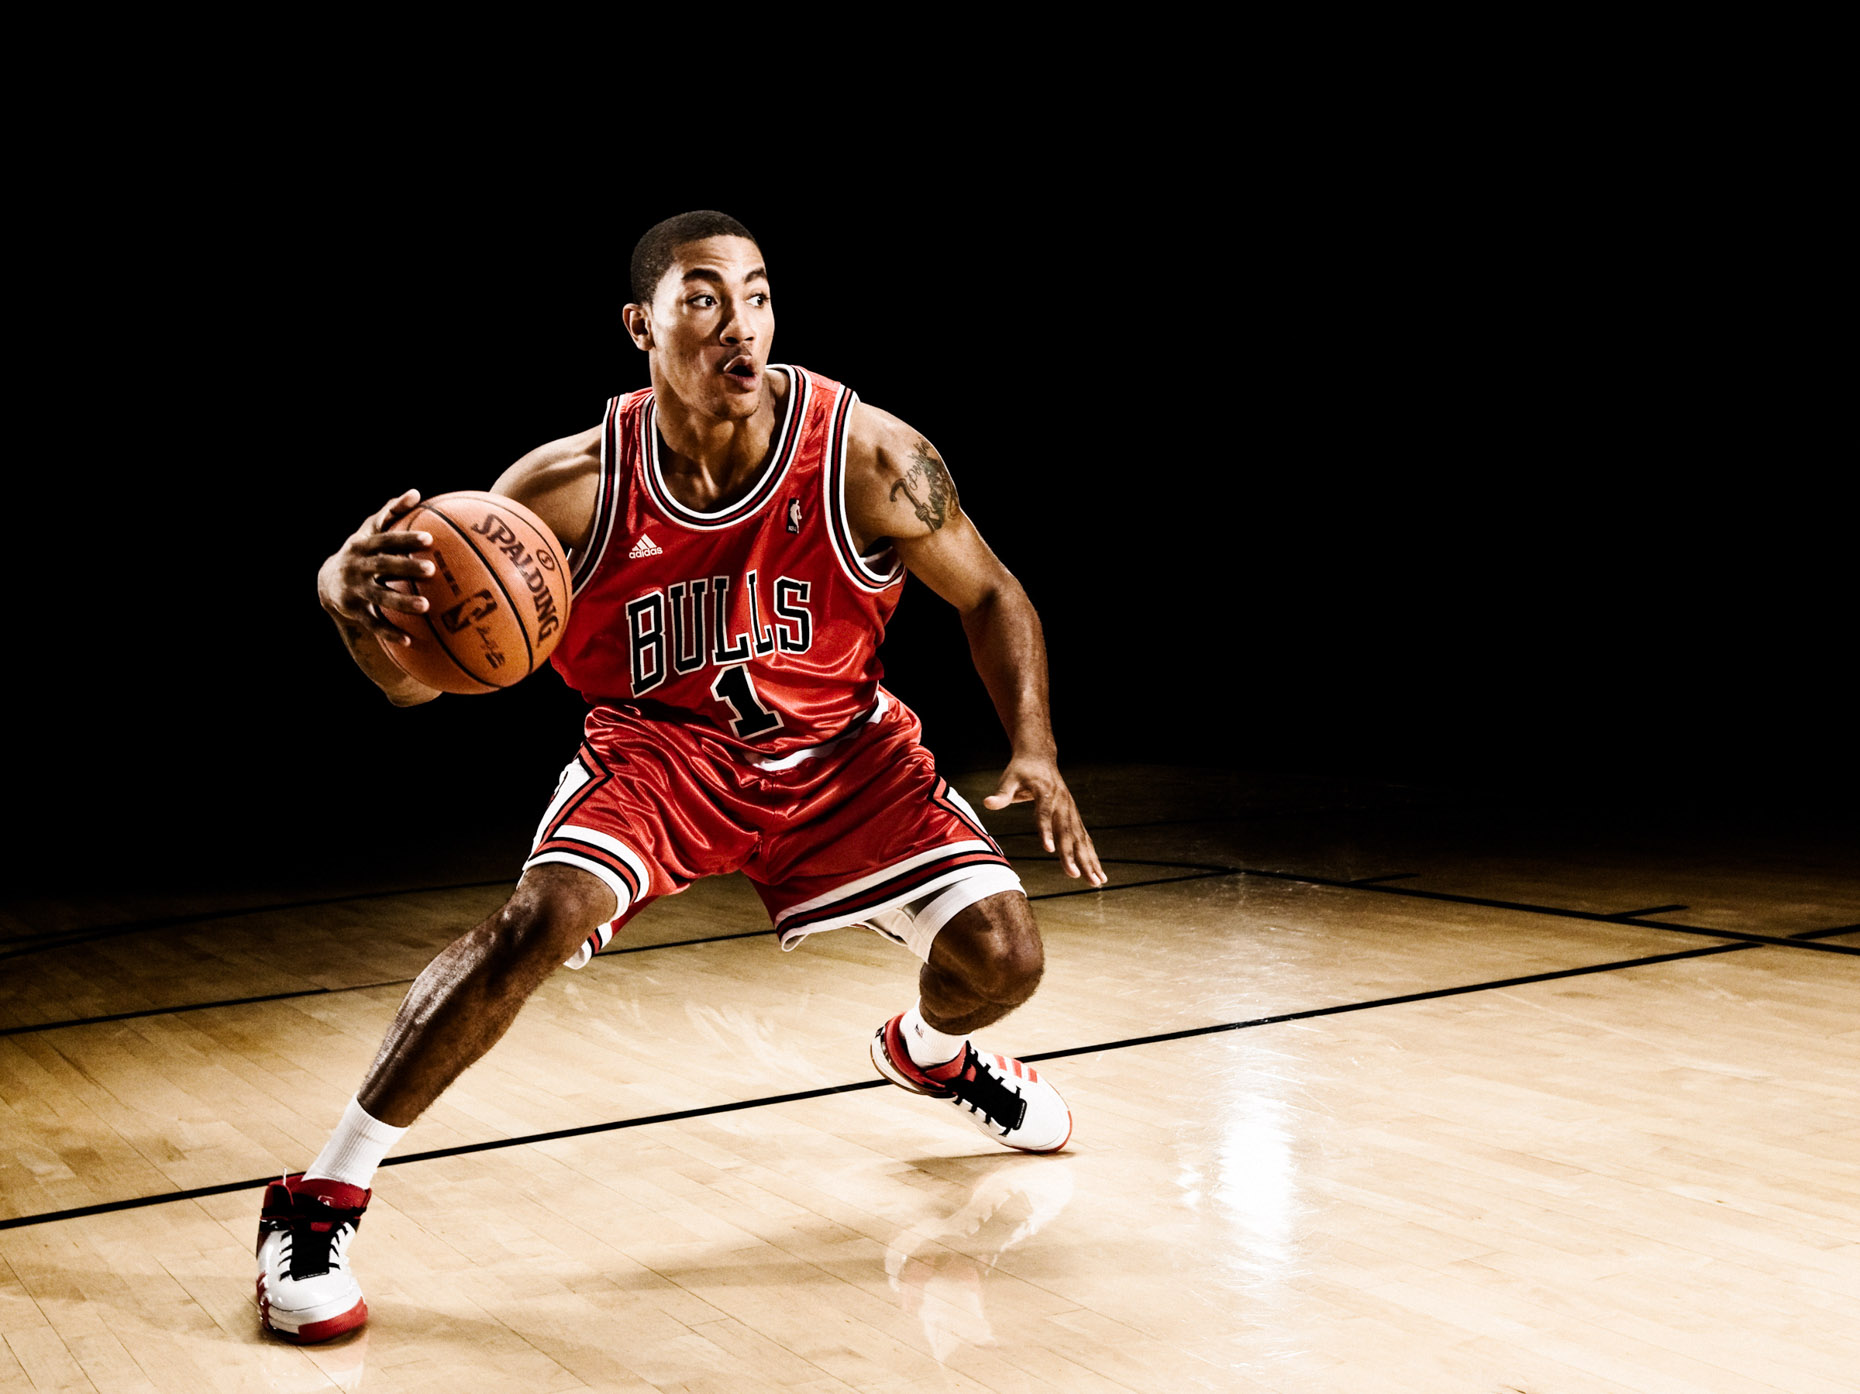 Adidas rookie shoot with Derrick Rose